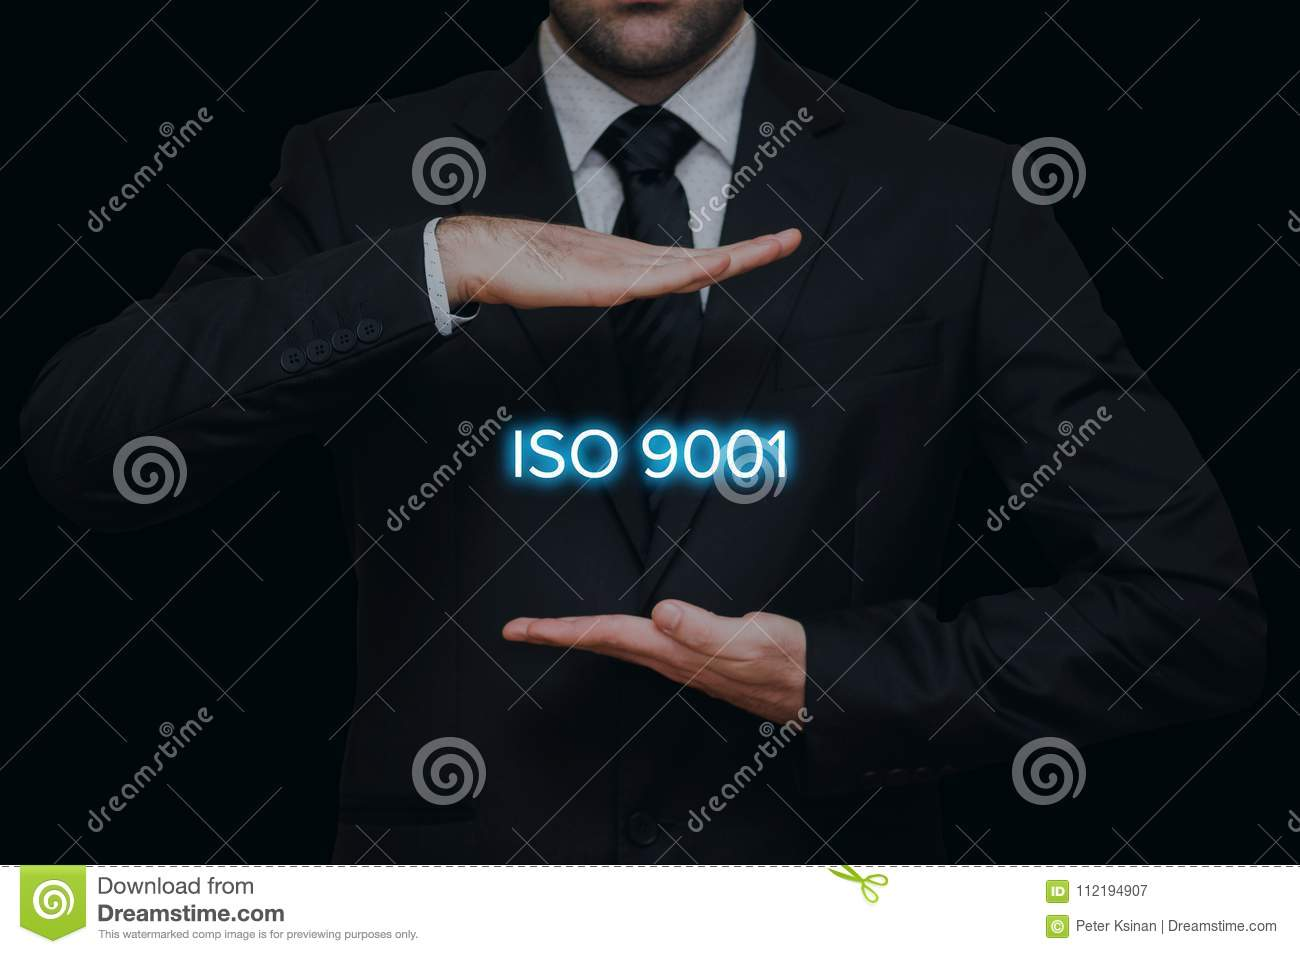 ISO 9001 standard concept